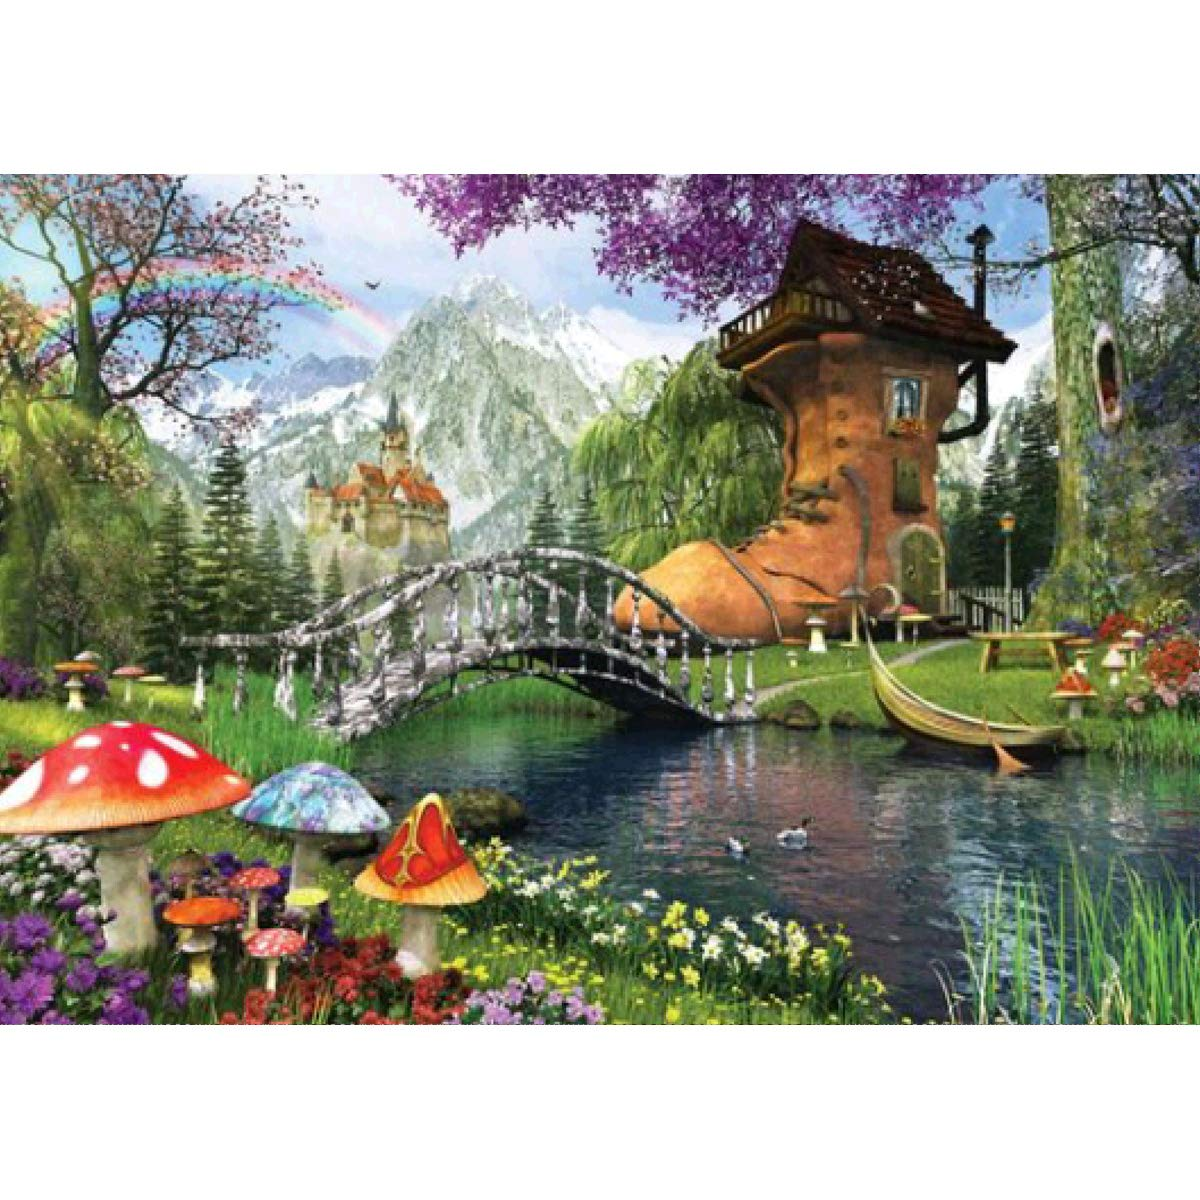 DIY 5D Diamond Painting Full Round Drill Kit Rhinestone Picture Art Craft for Home Wall Decor 12x16In Boot House in Fairy Tales